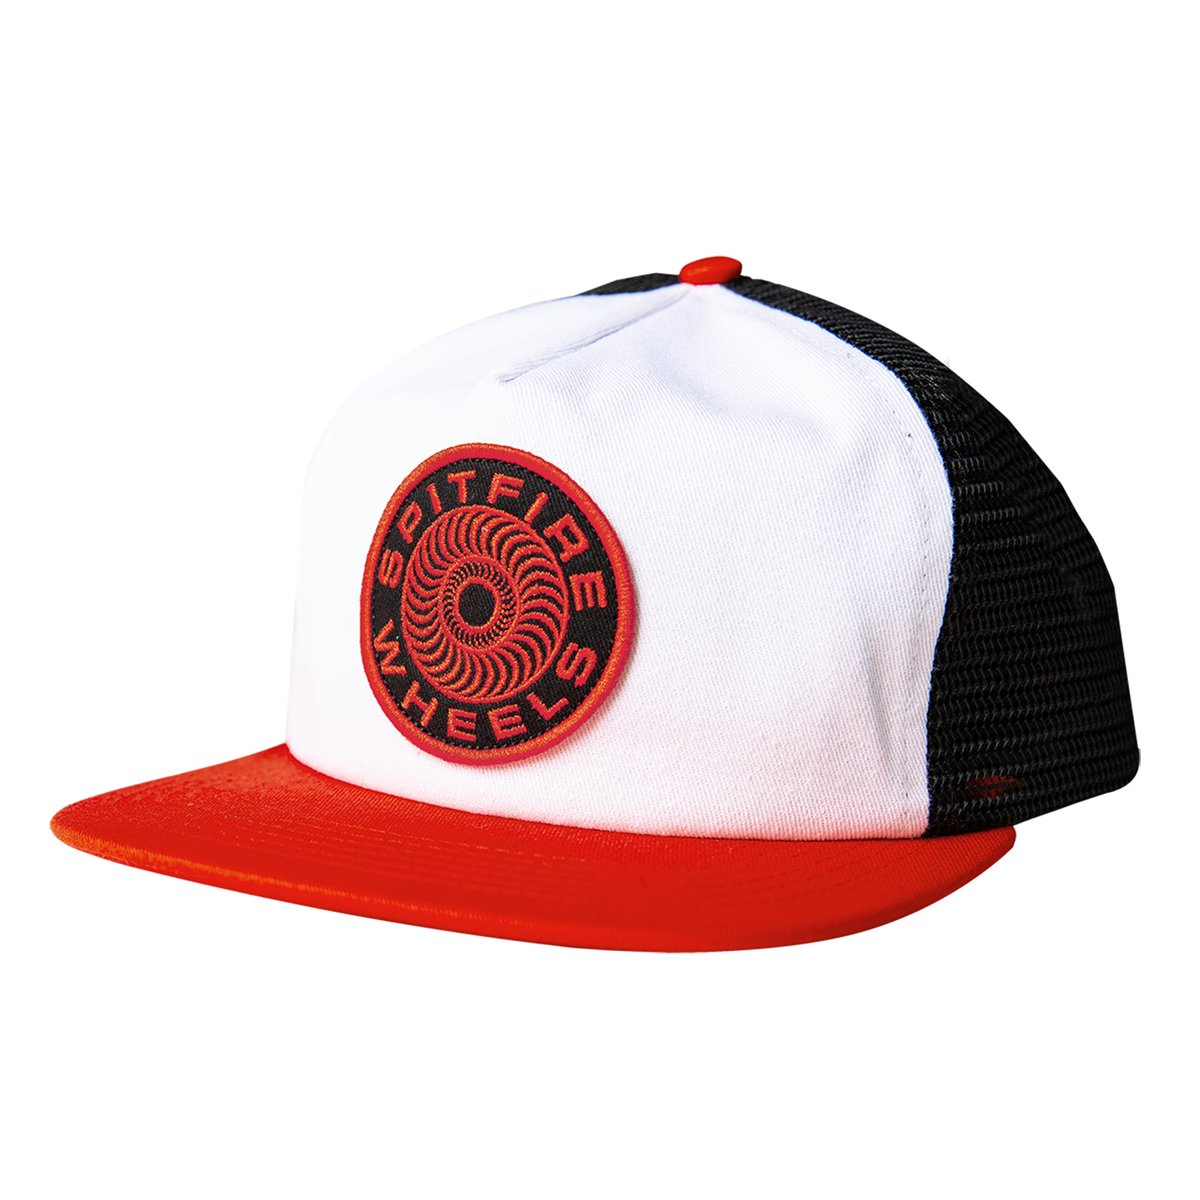 Spitfire Classic 87 Swirl Snapback White/Red